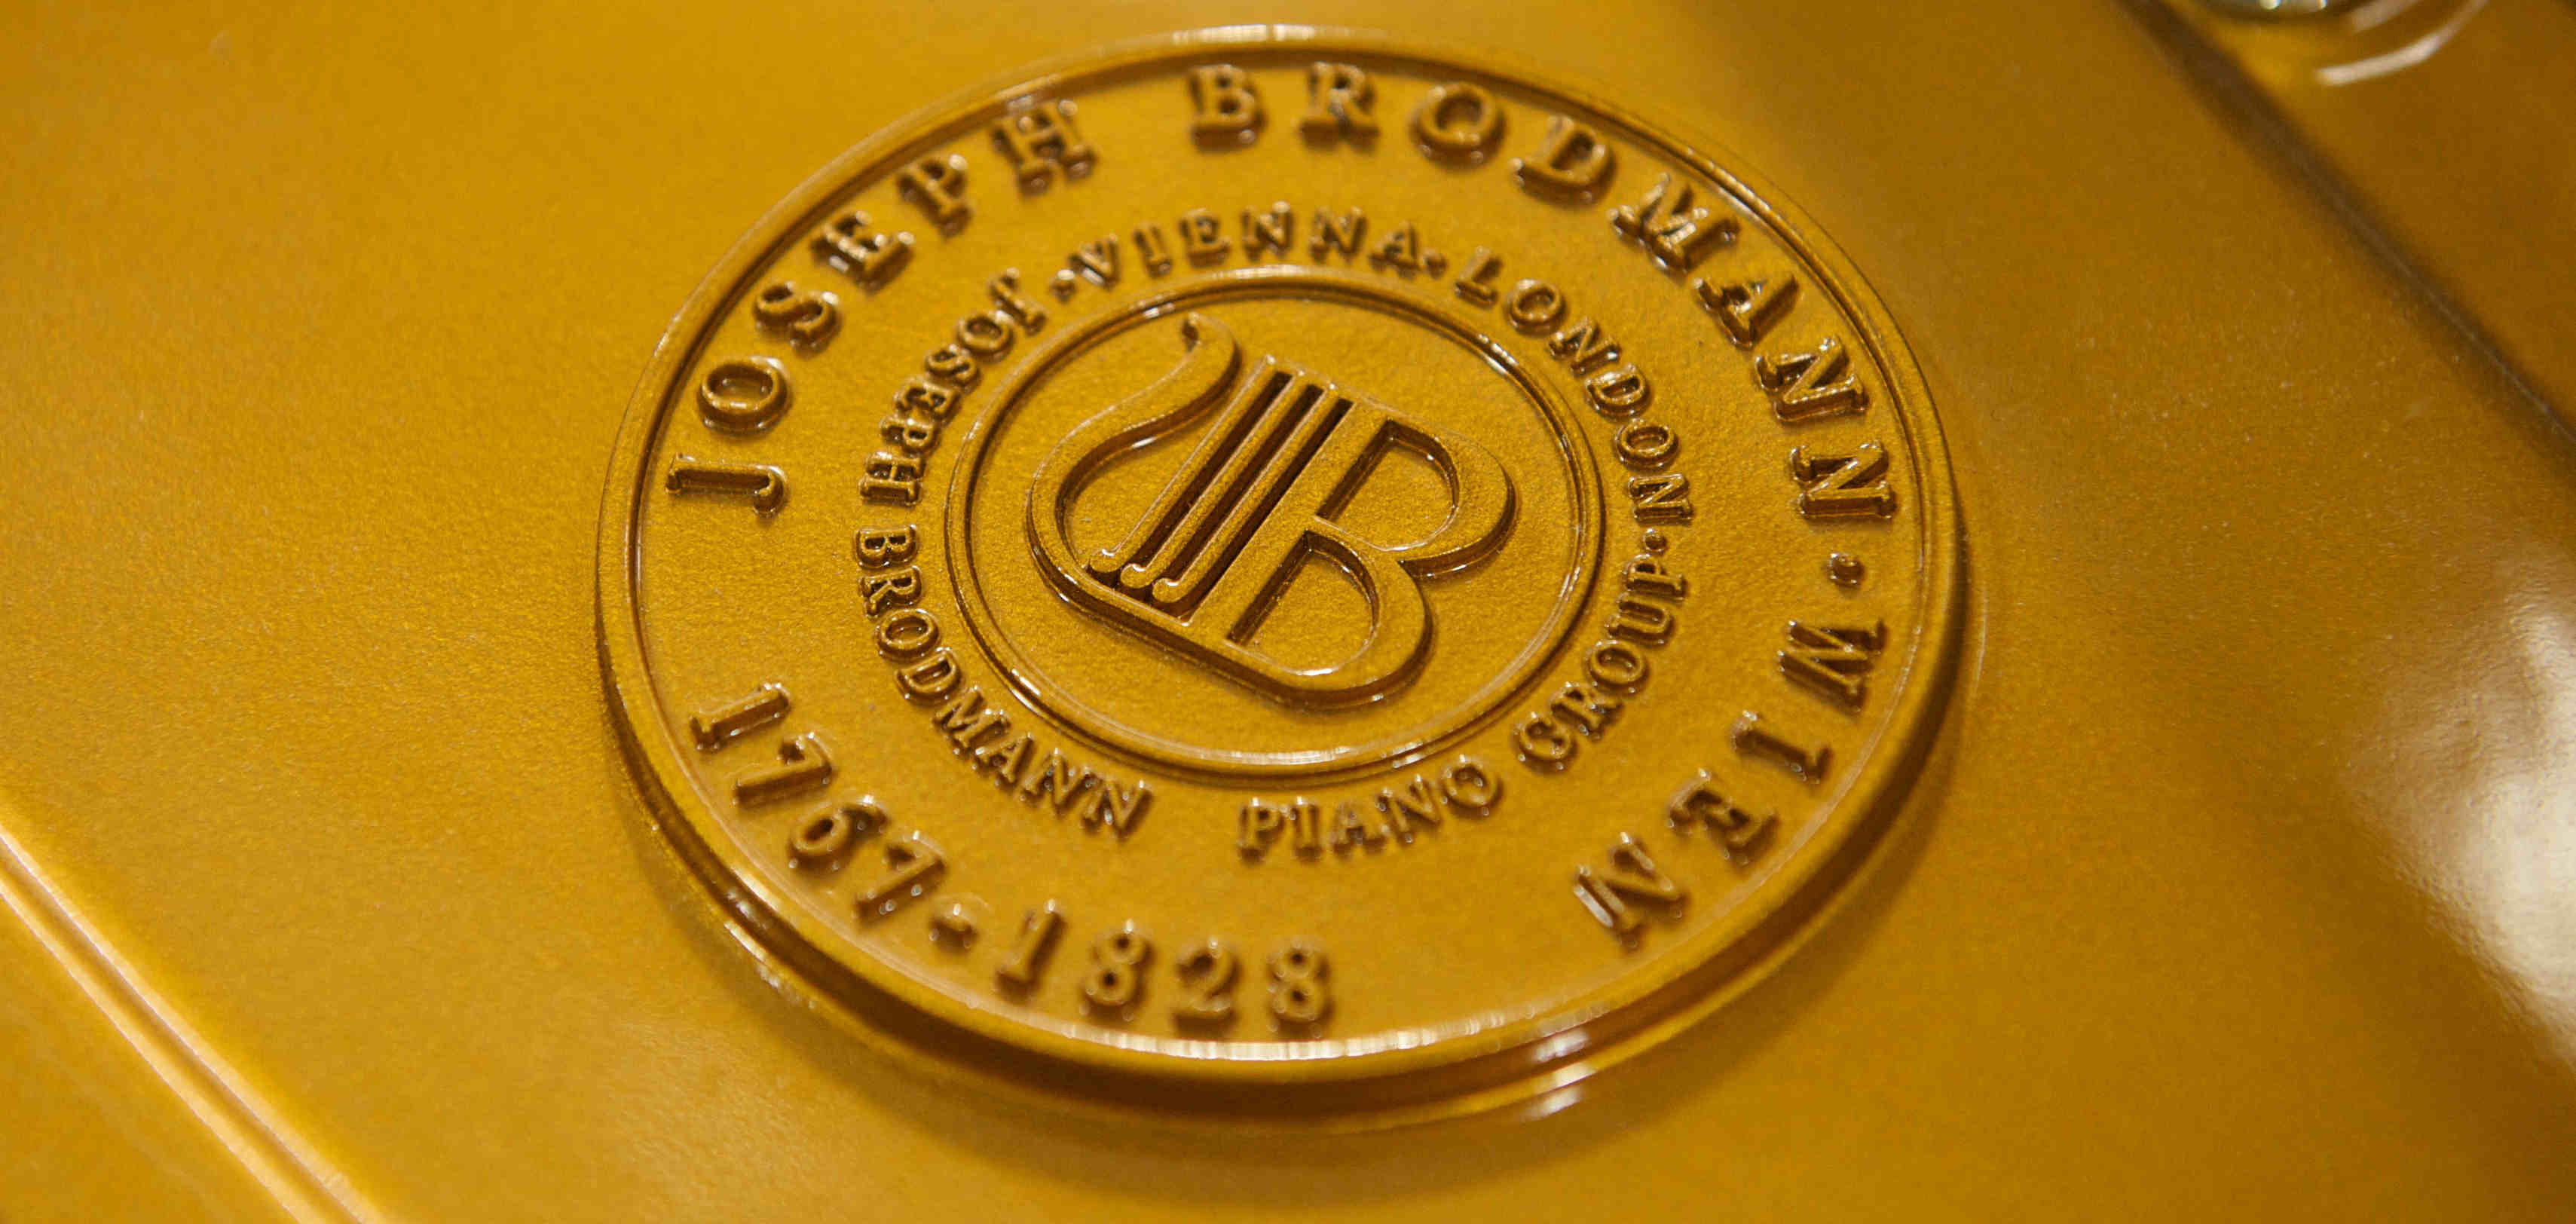 Brodmann grand piano plate with medallion